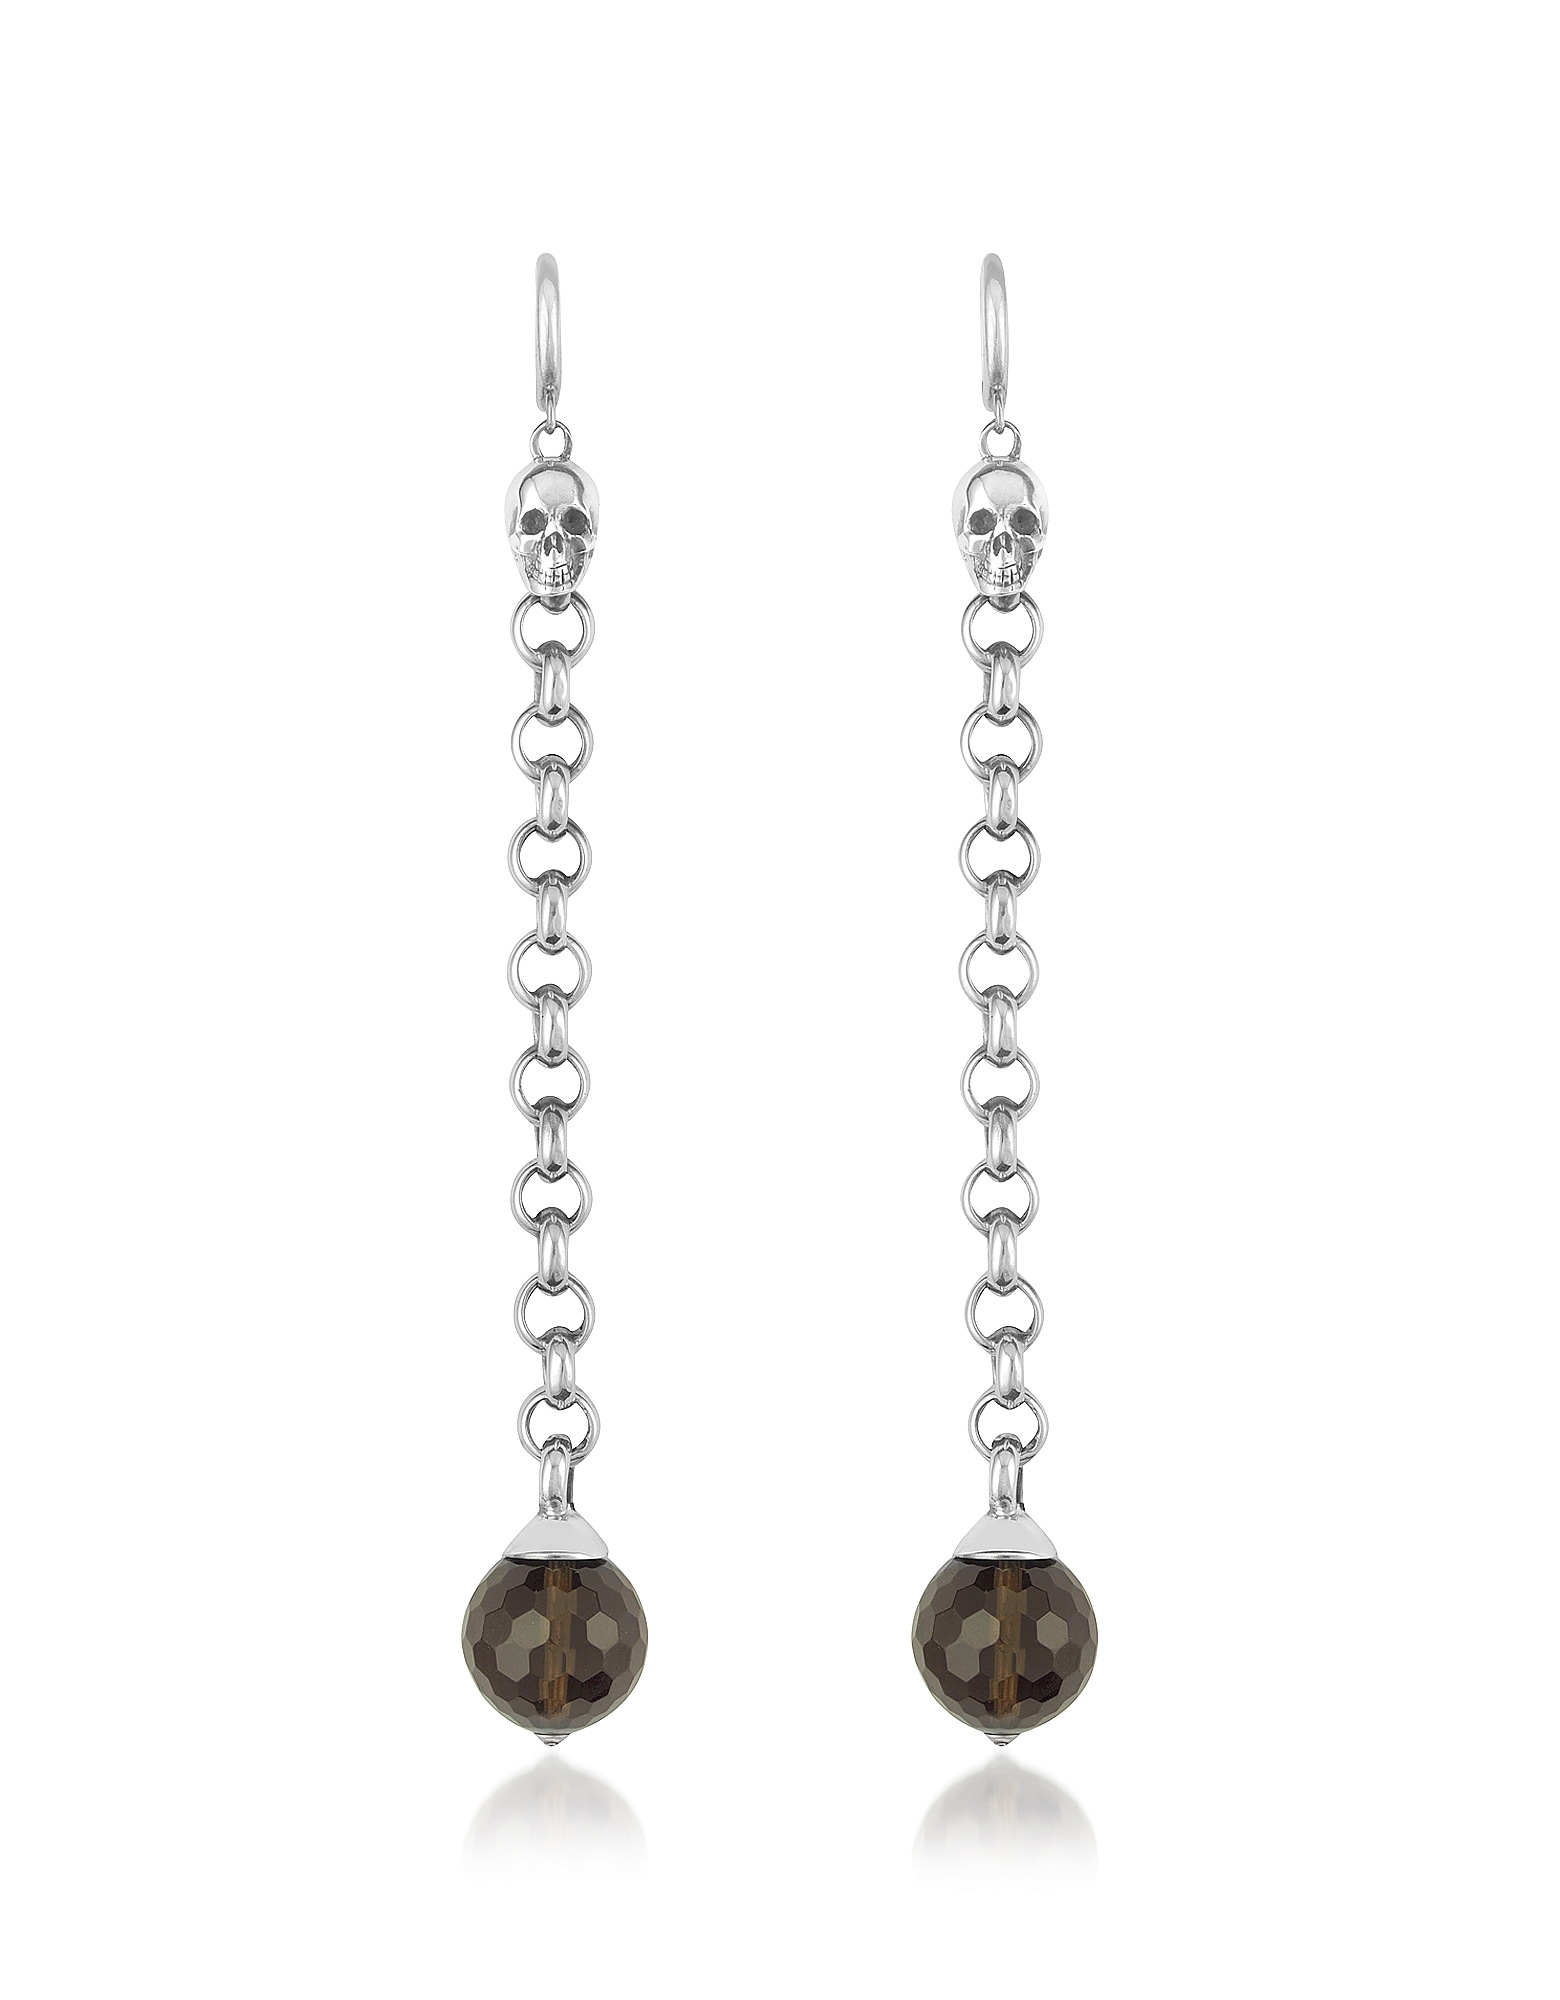 Image of Ugo Cacciatori Designer Earrings, Smoky Quartz Orb & Skull Sterling Earrings